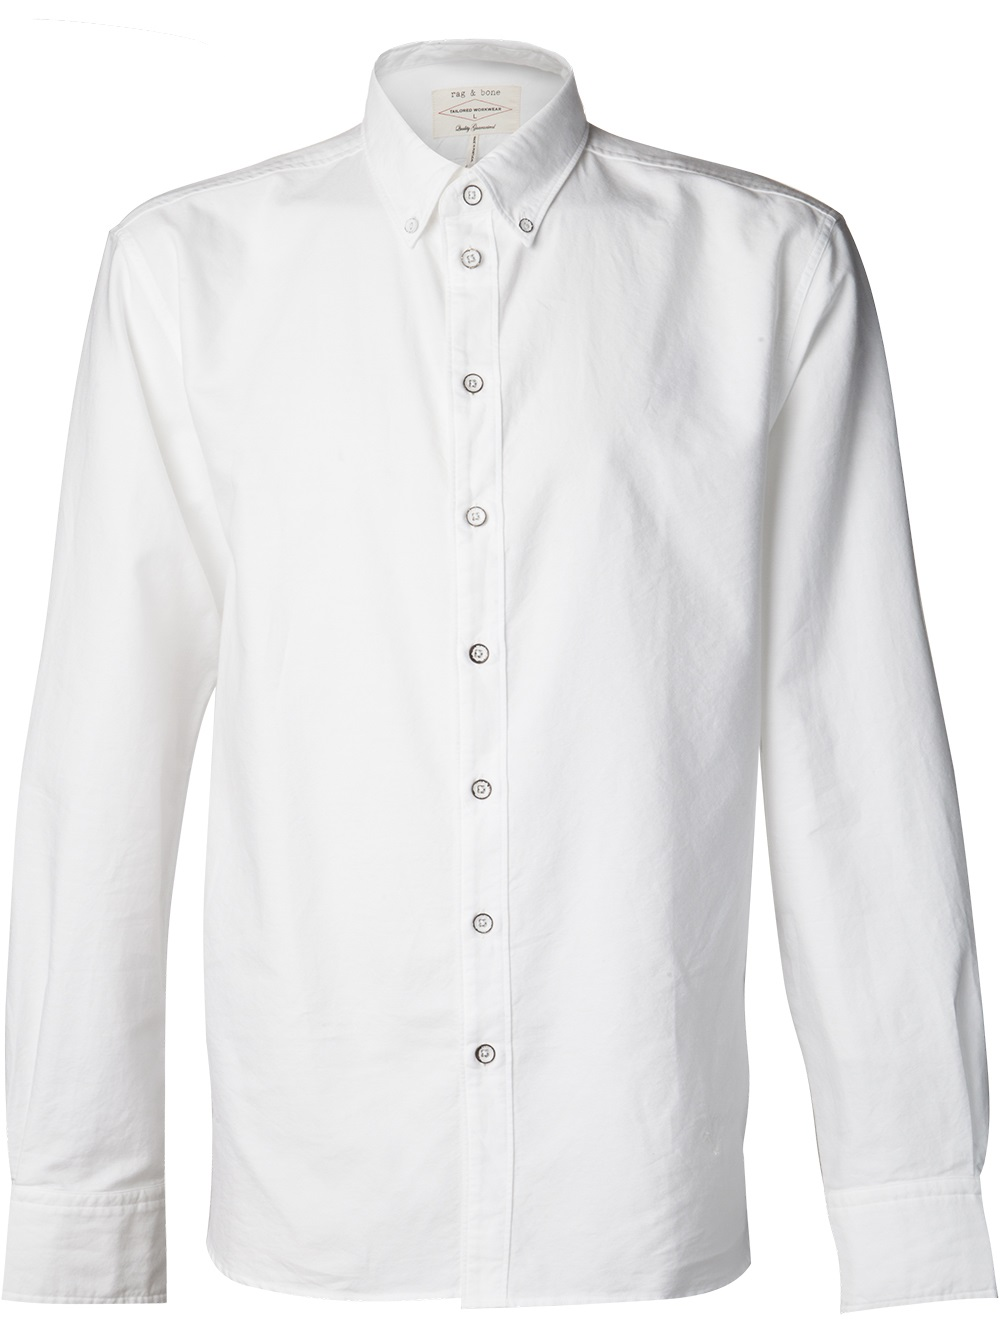 0331477707074f Womens Oxford Shirts Jcpenney